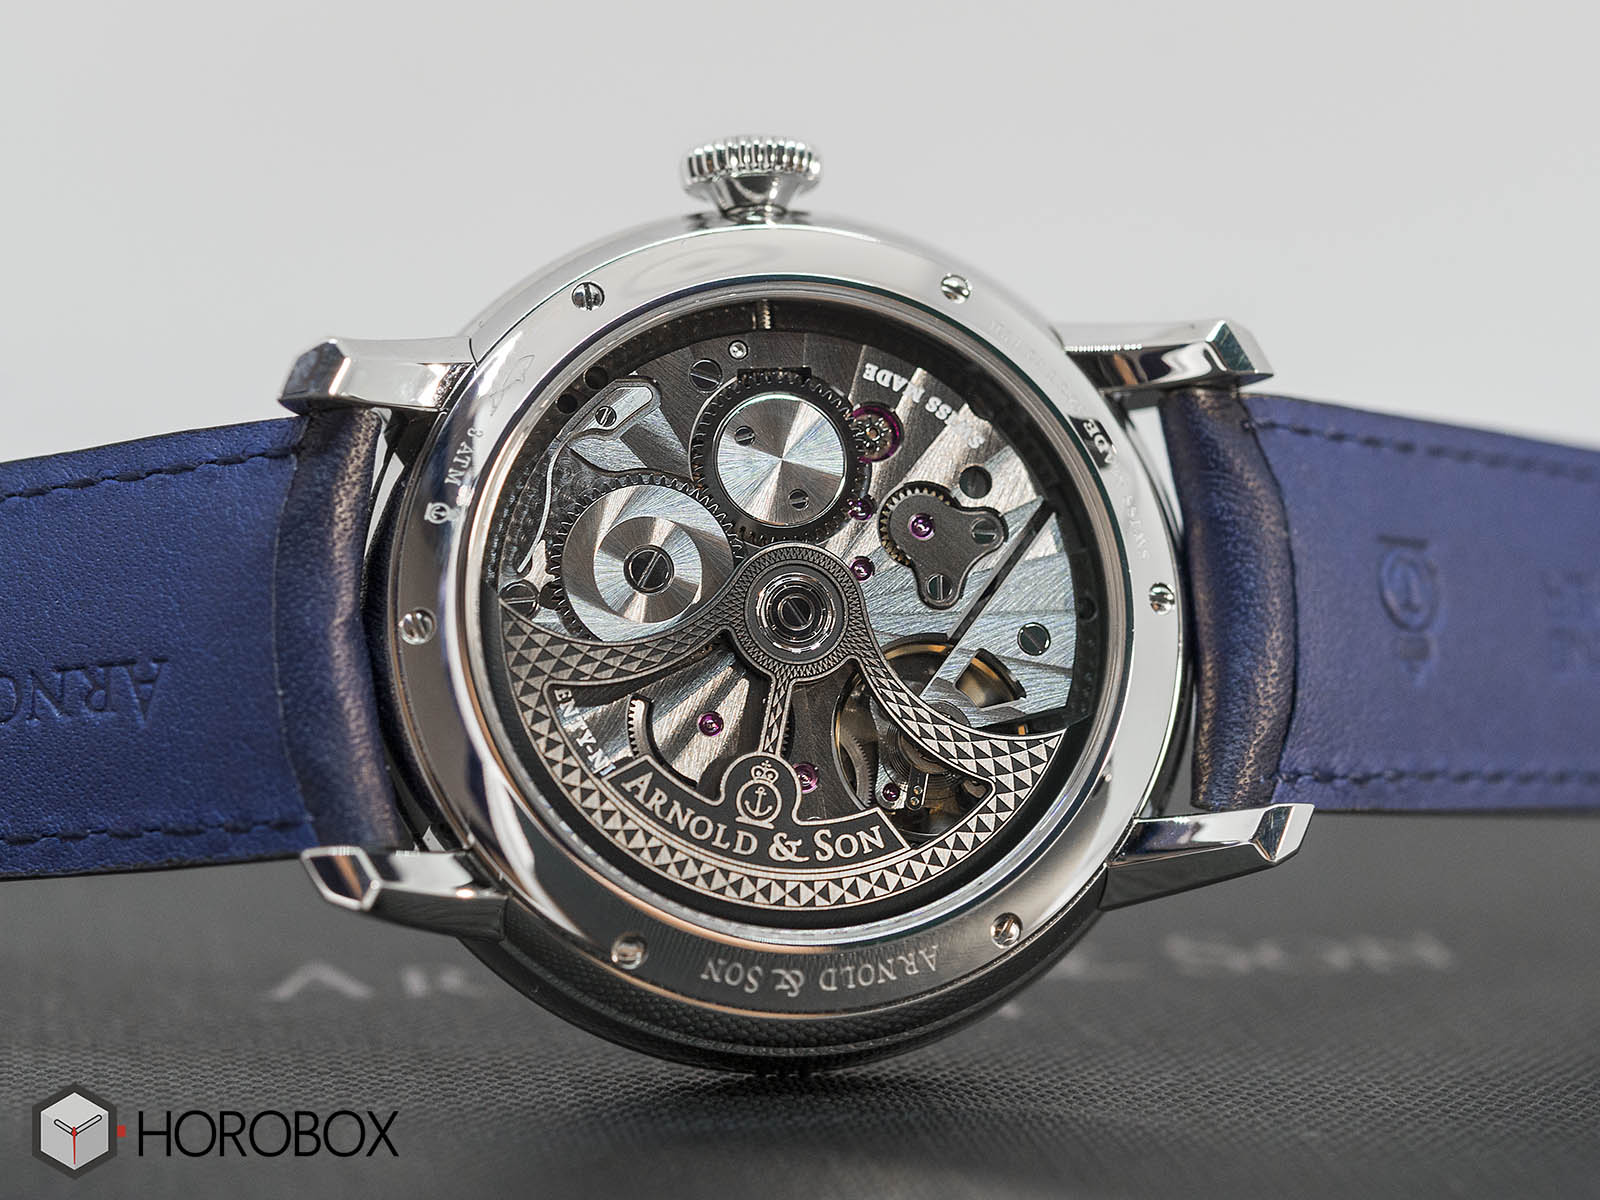 arnold-son-globetrotter-1wtas-s01a-d137s-5.jpg